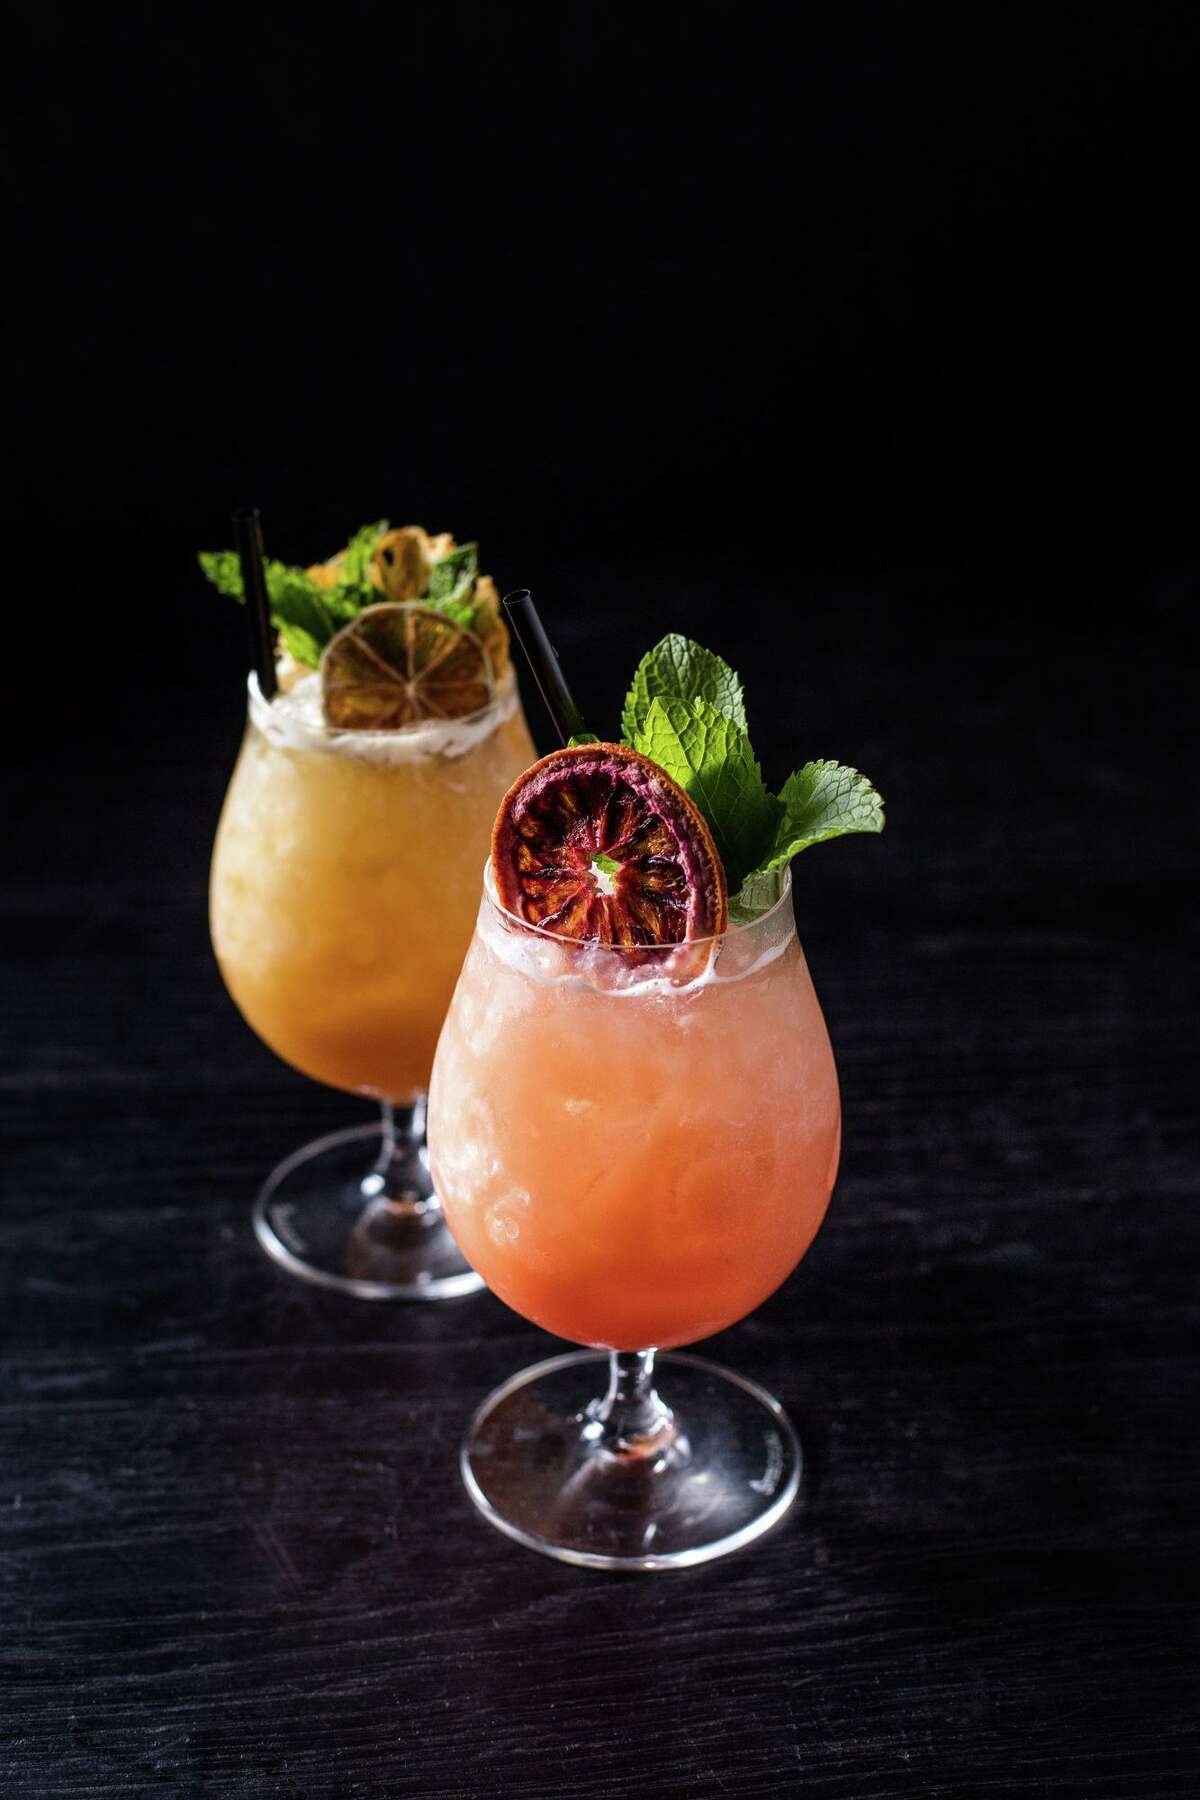 The Wheel's beverage director Kyle Tran has designed a cocktail menu with both classics and signature libations.